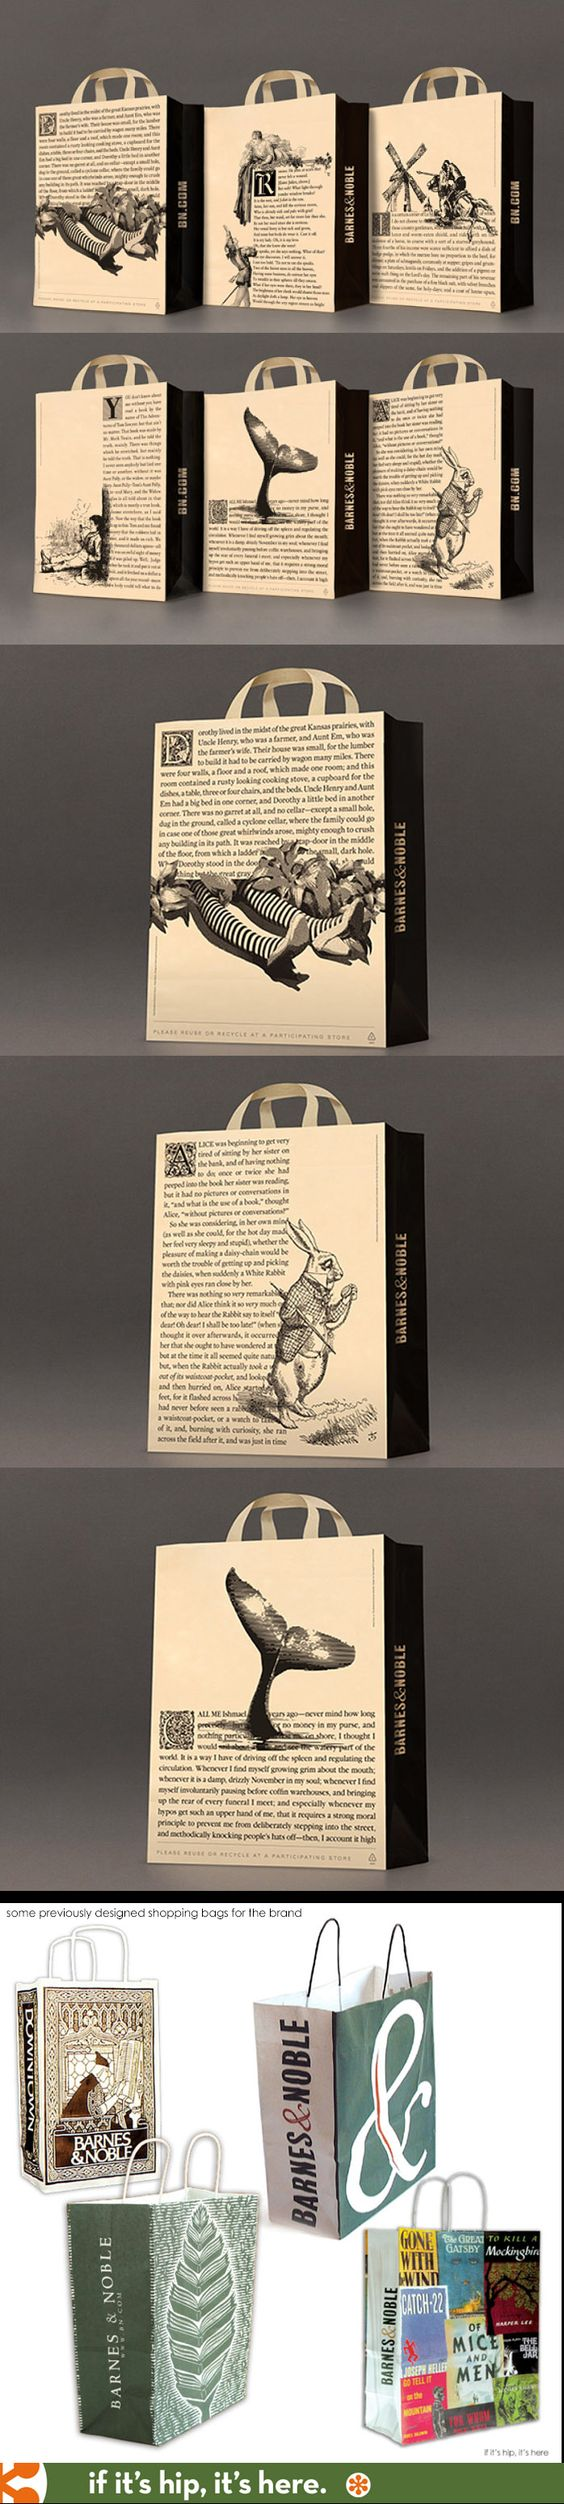 New packaging for Barnes & Noble focuses on the first page of classic books combined with character illustrations.